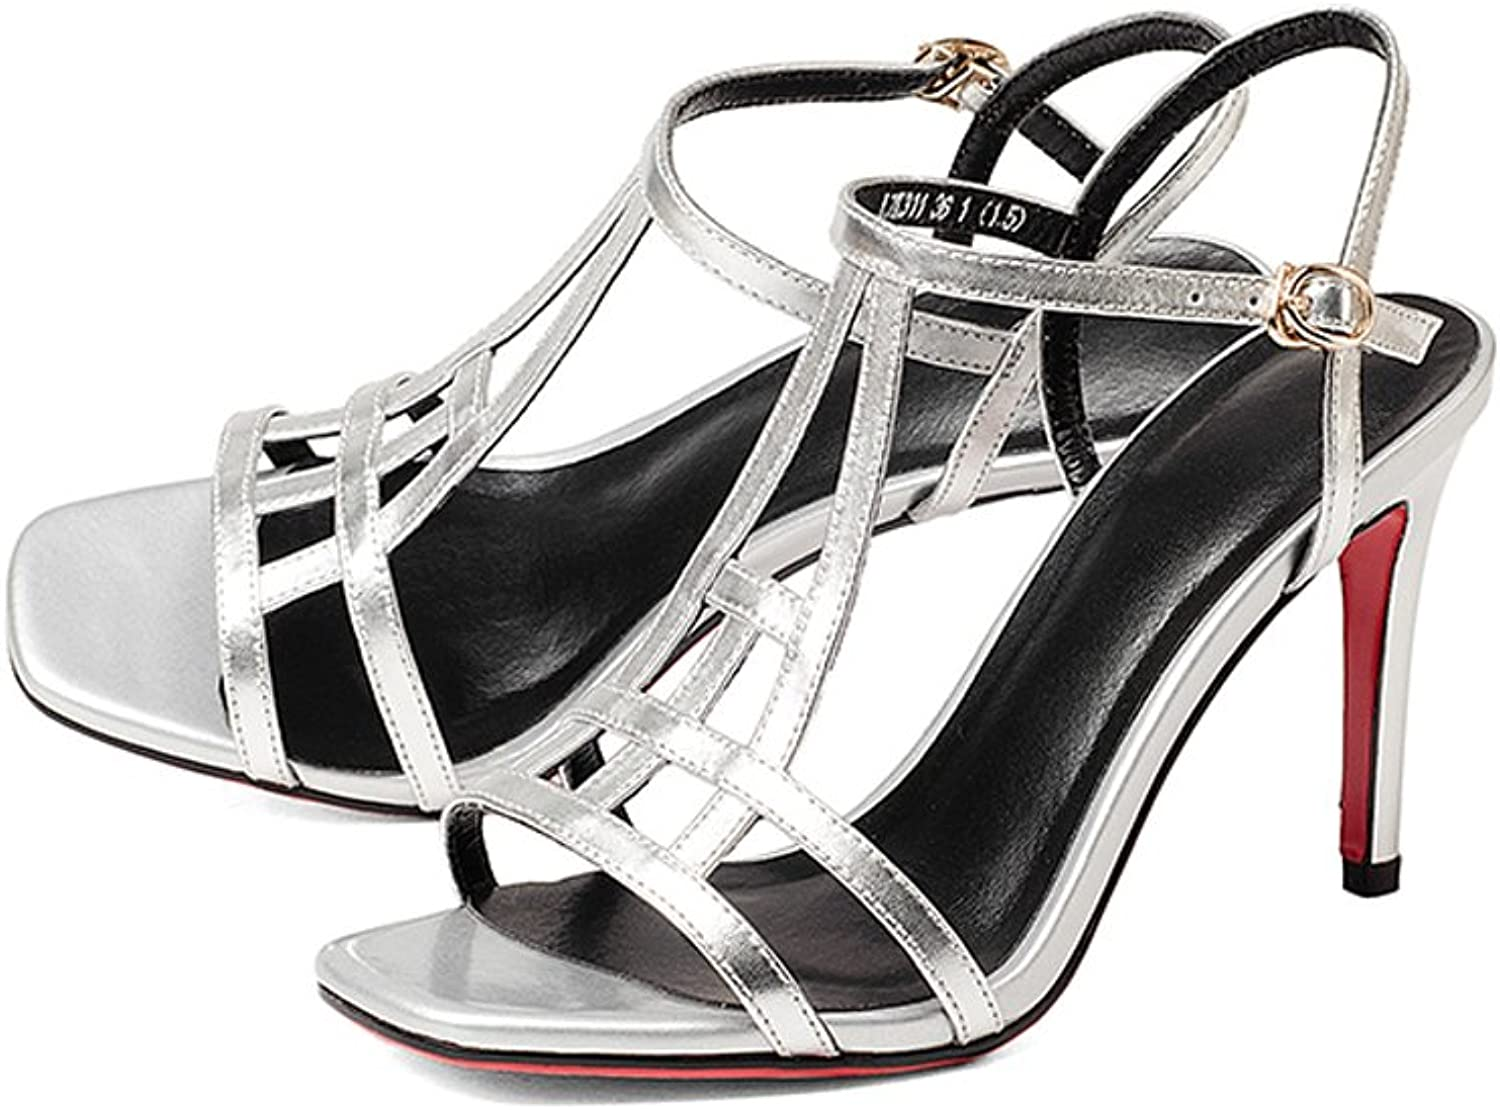 WANGXIAOLIN Open Toe Lace Up shoes Fashion Roman Heel Sexy Heels High Heel Sandals ( color   Silver , Size   35 )